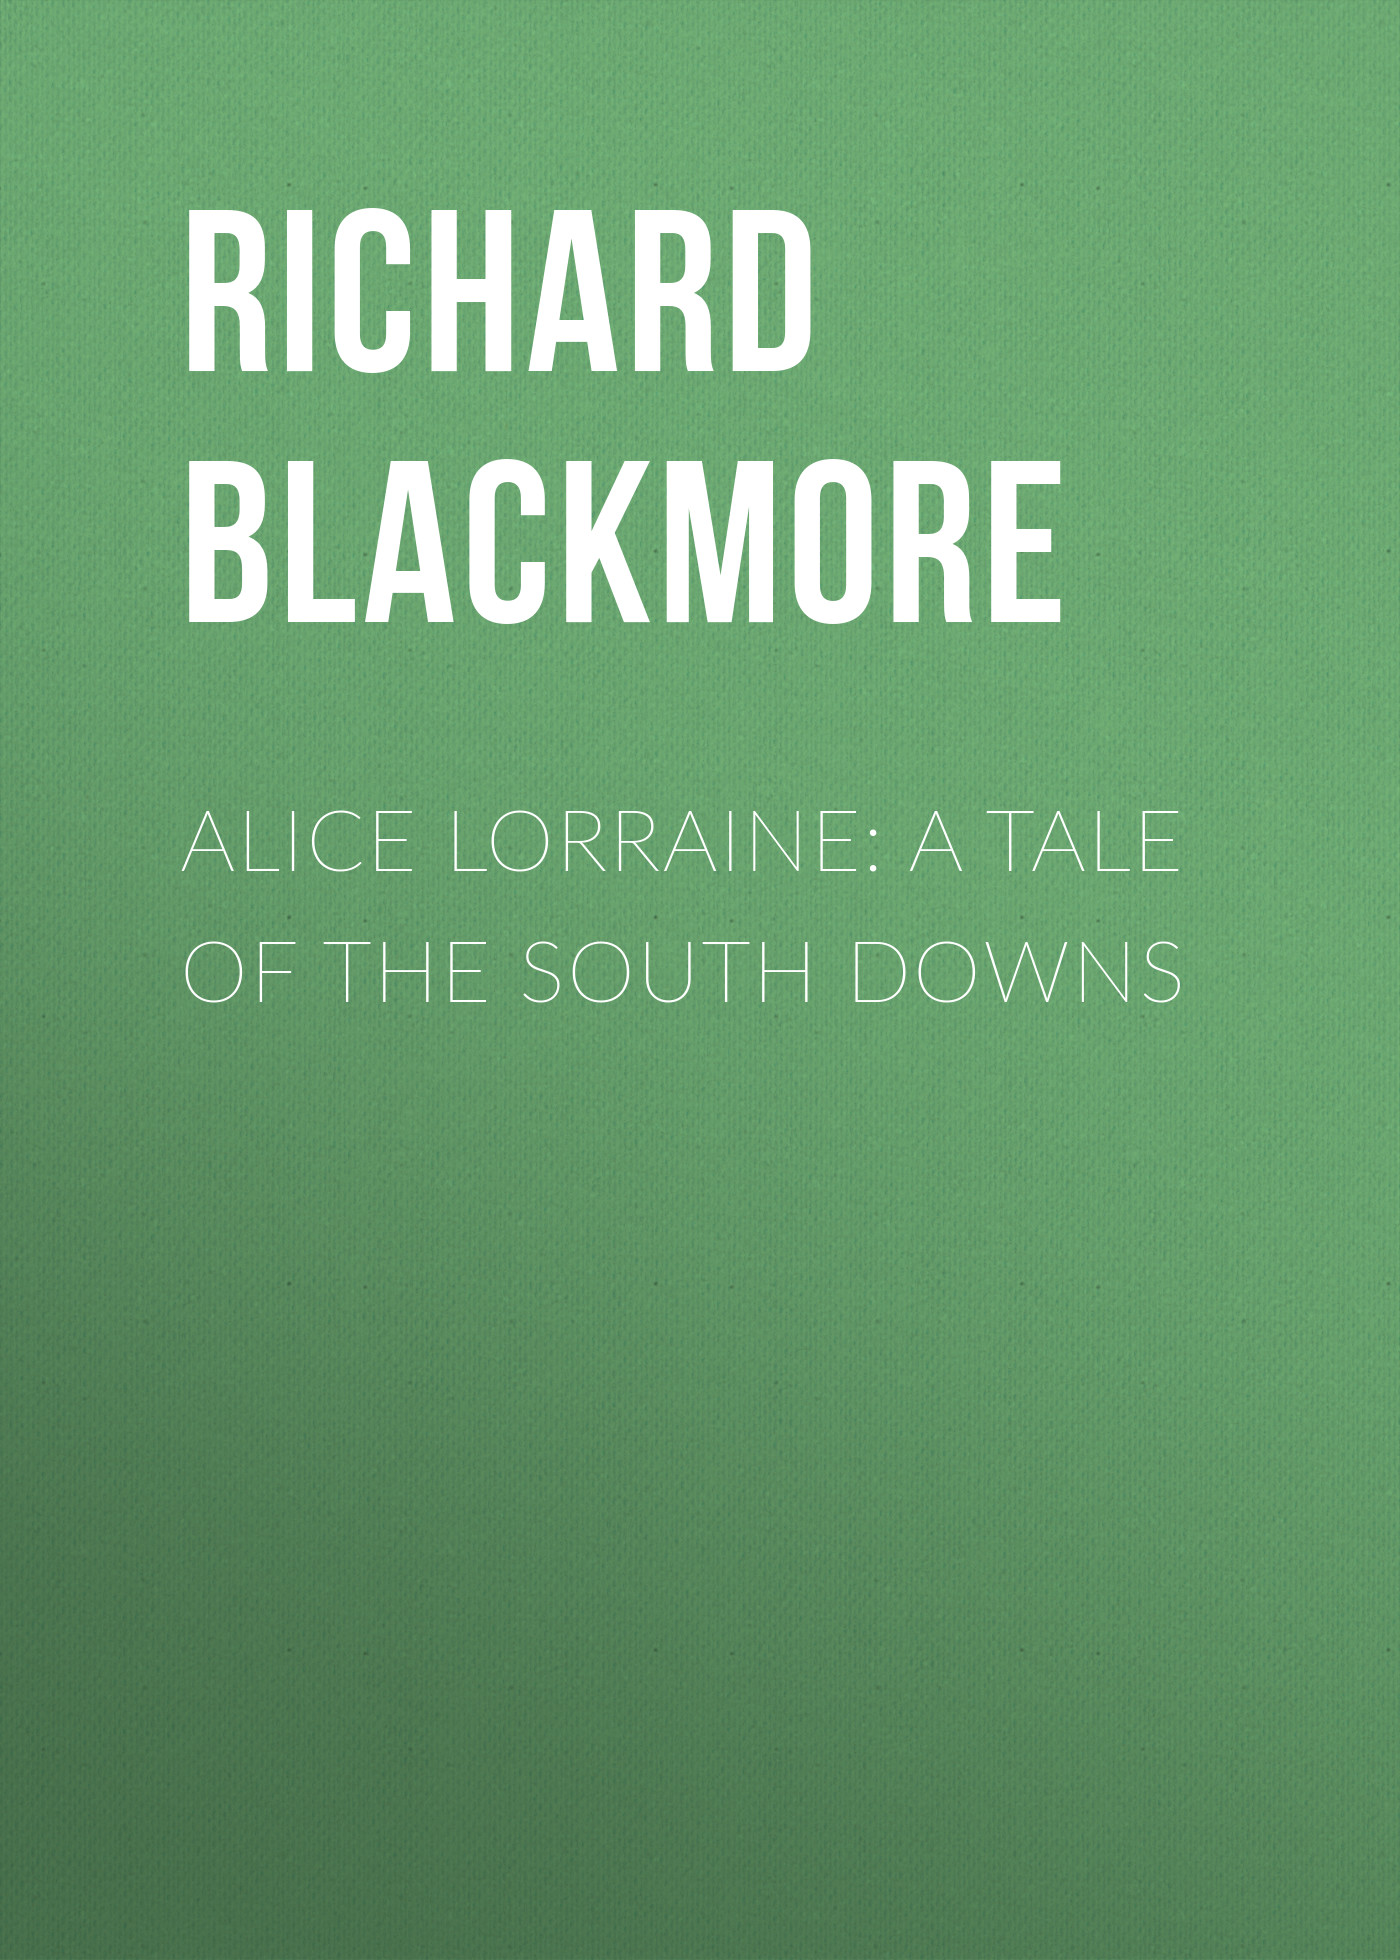 Blackmore Richard Doddridge Alice Lorraine: A Tale of the South Downs blackmore richard doddridge cradock nowell a tale of the new forest volume 2 of 3